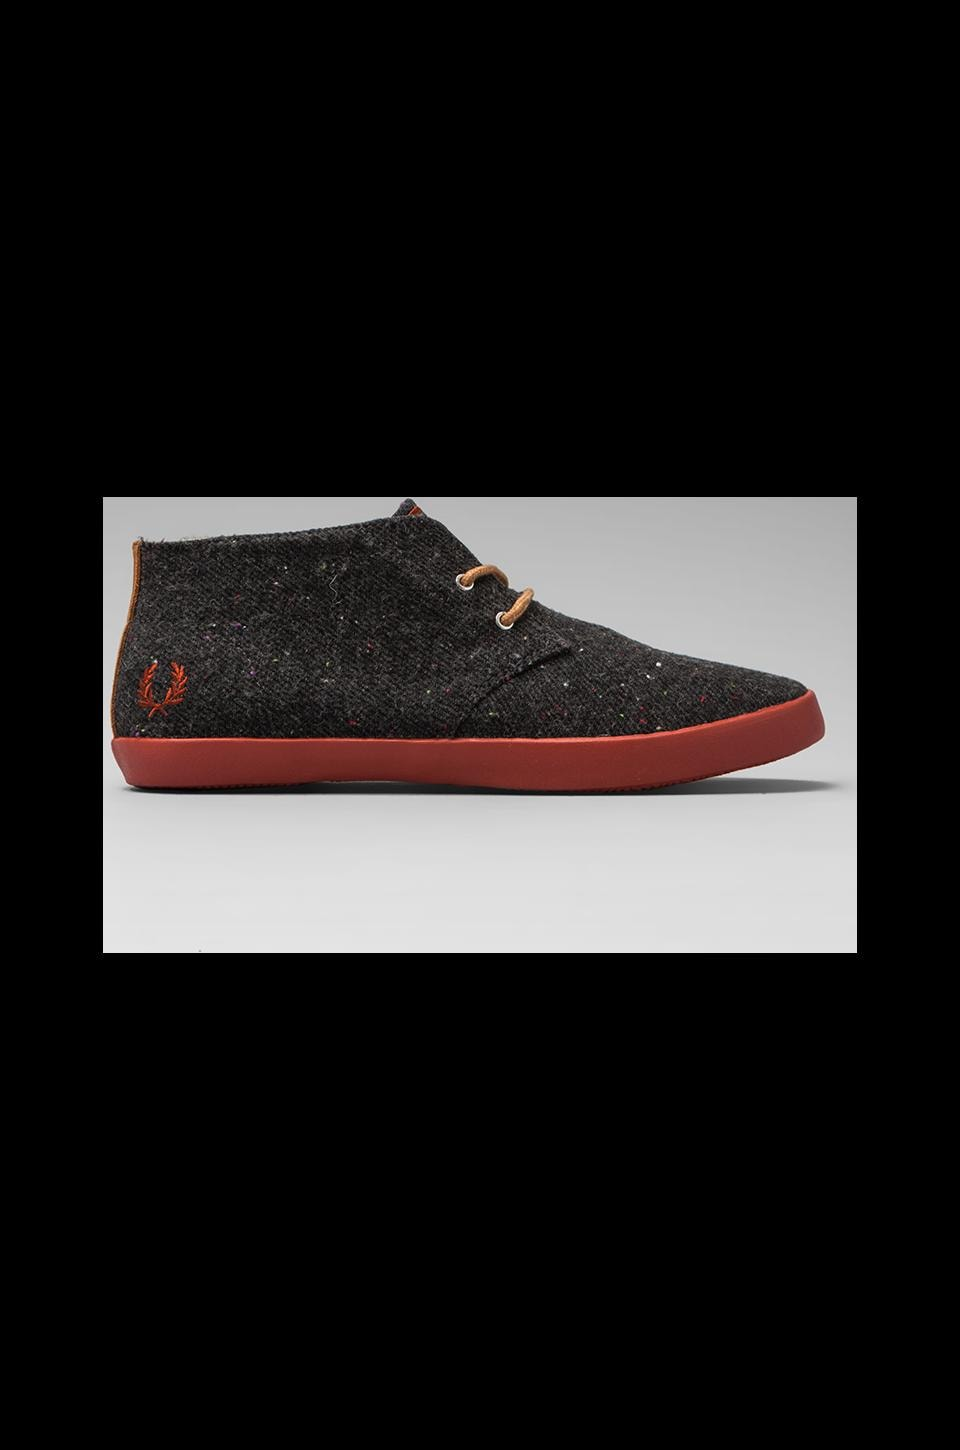 Fred Perry Byron Mid Flecked Wool in Anchor Grey/1964 Terracotta